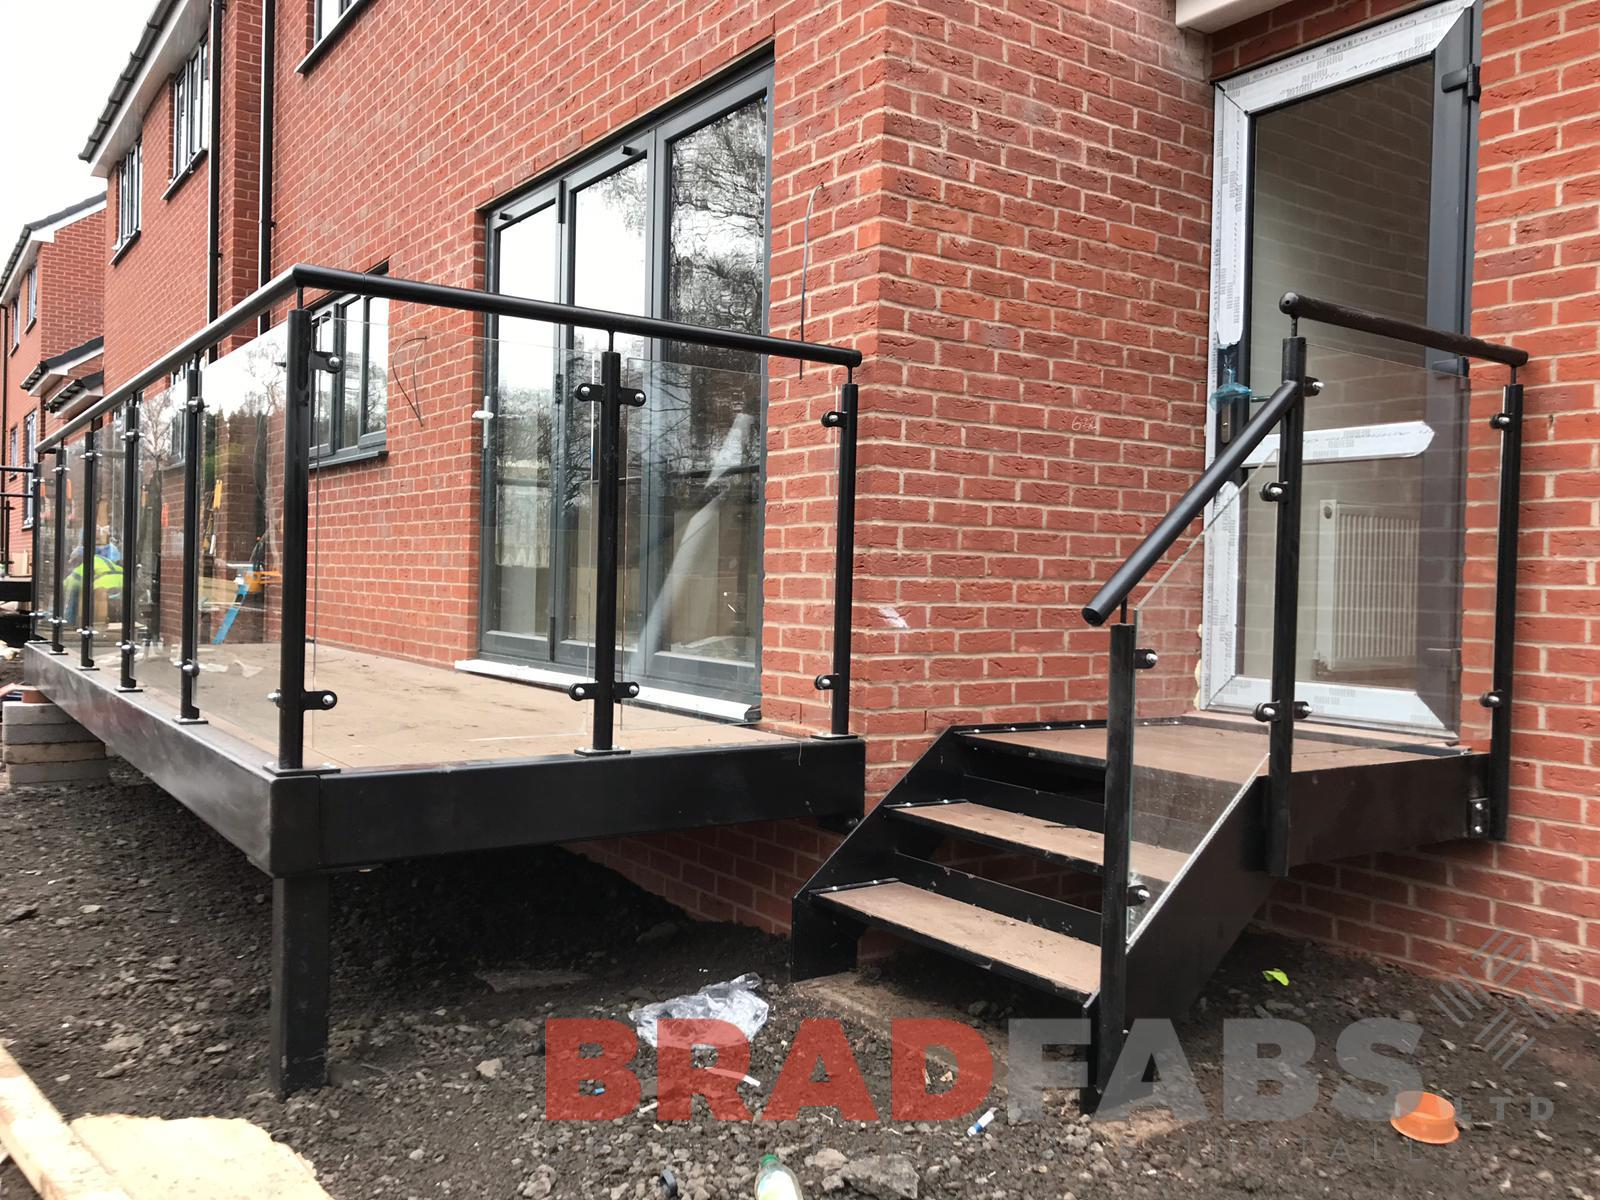 Mild steel balustrade, galvanised and powder coated black, with glass infill panels, external for commercial property by Bradfabs.